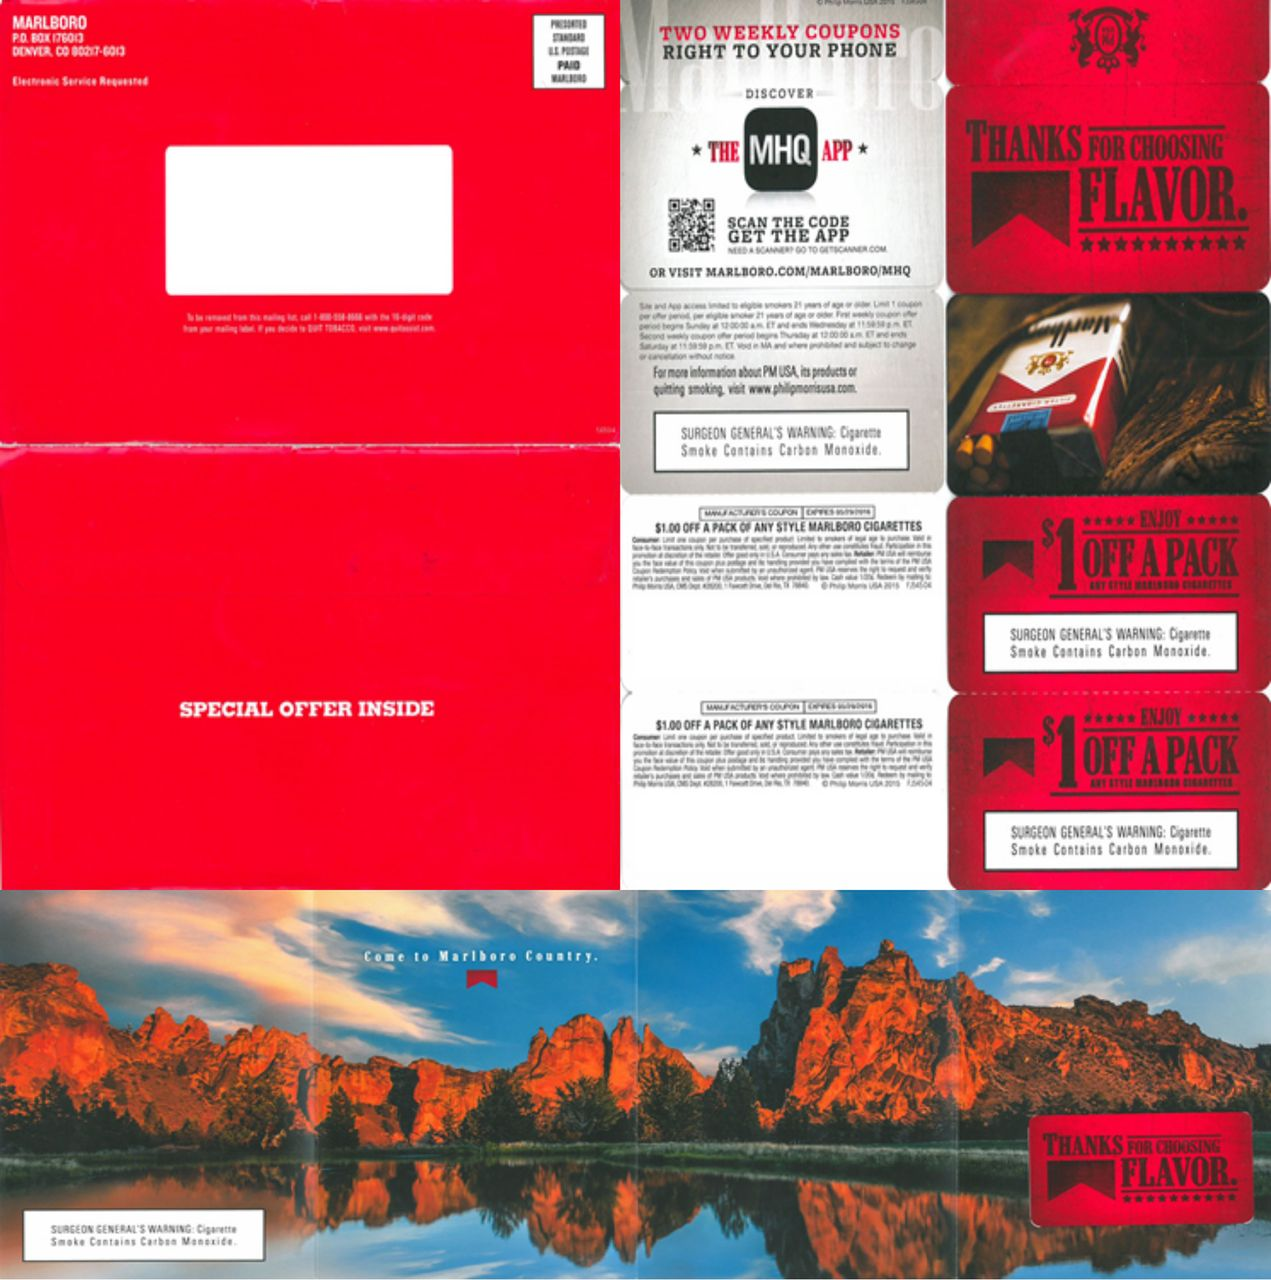 Cigarette coupons by mail 2018